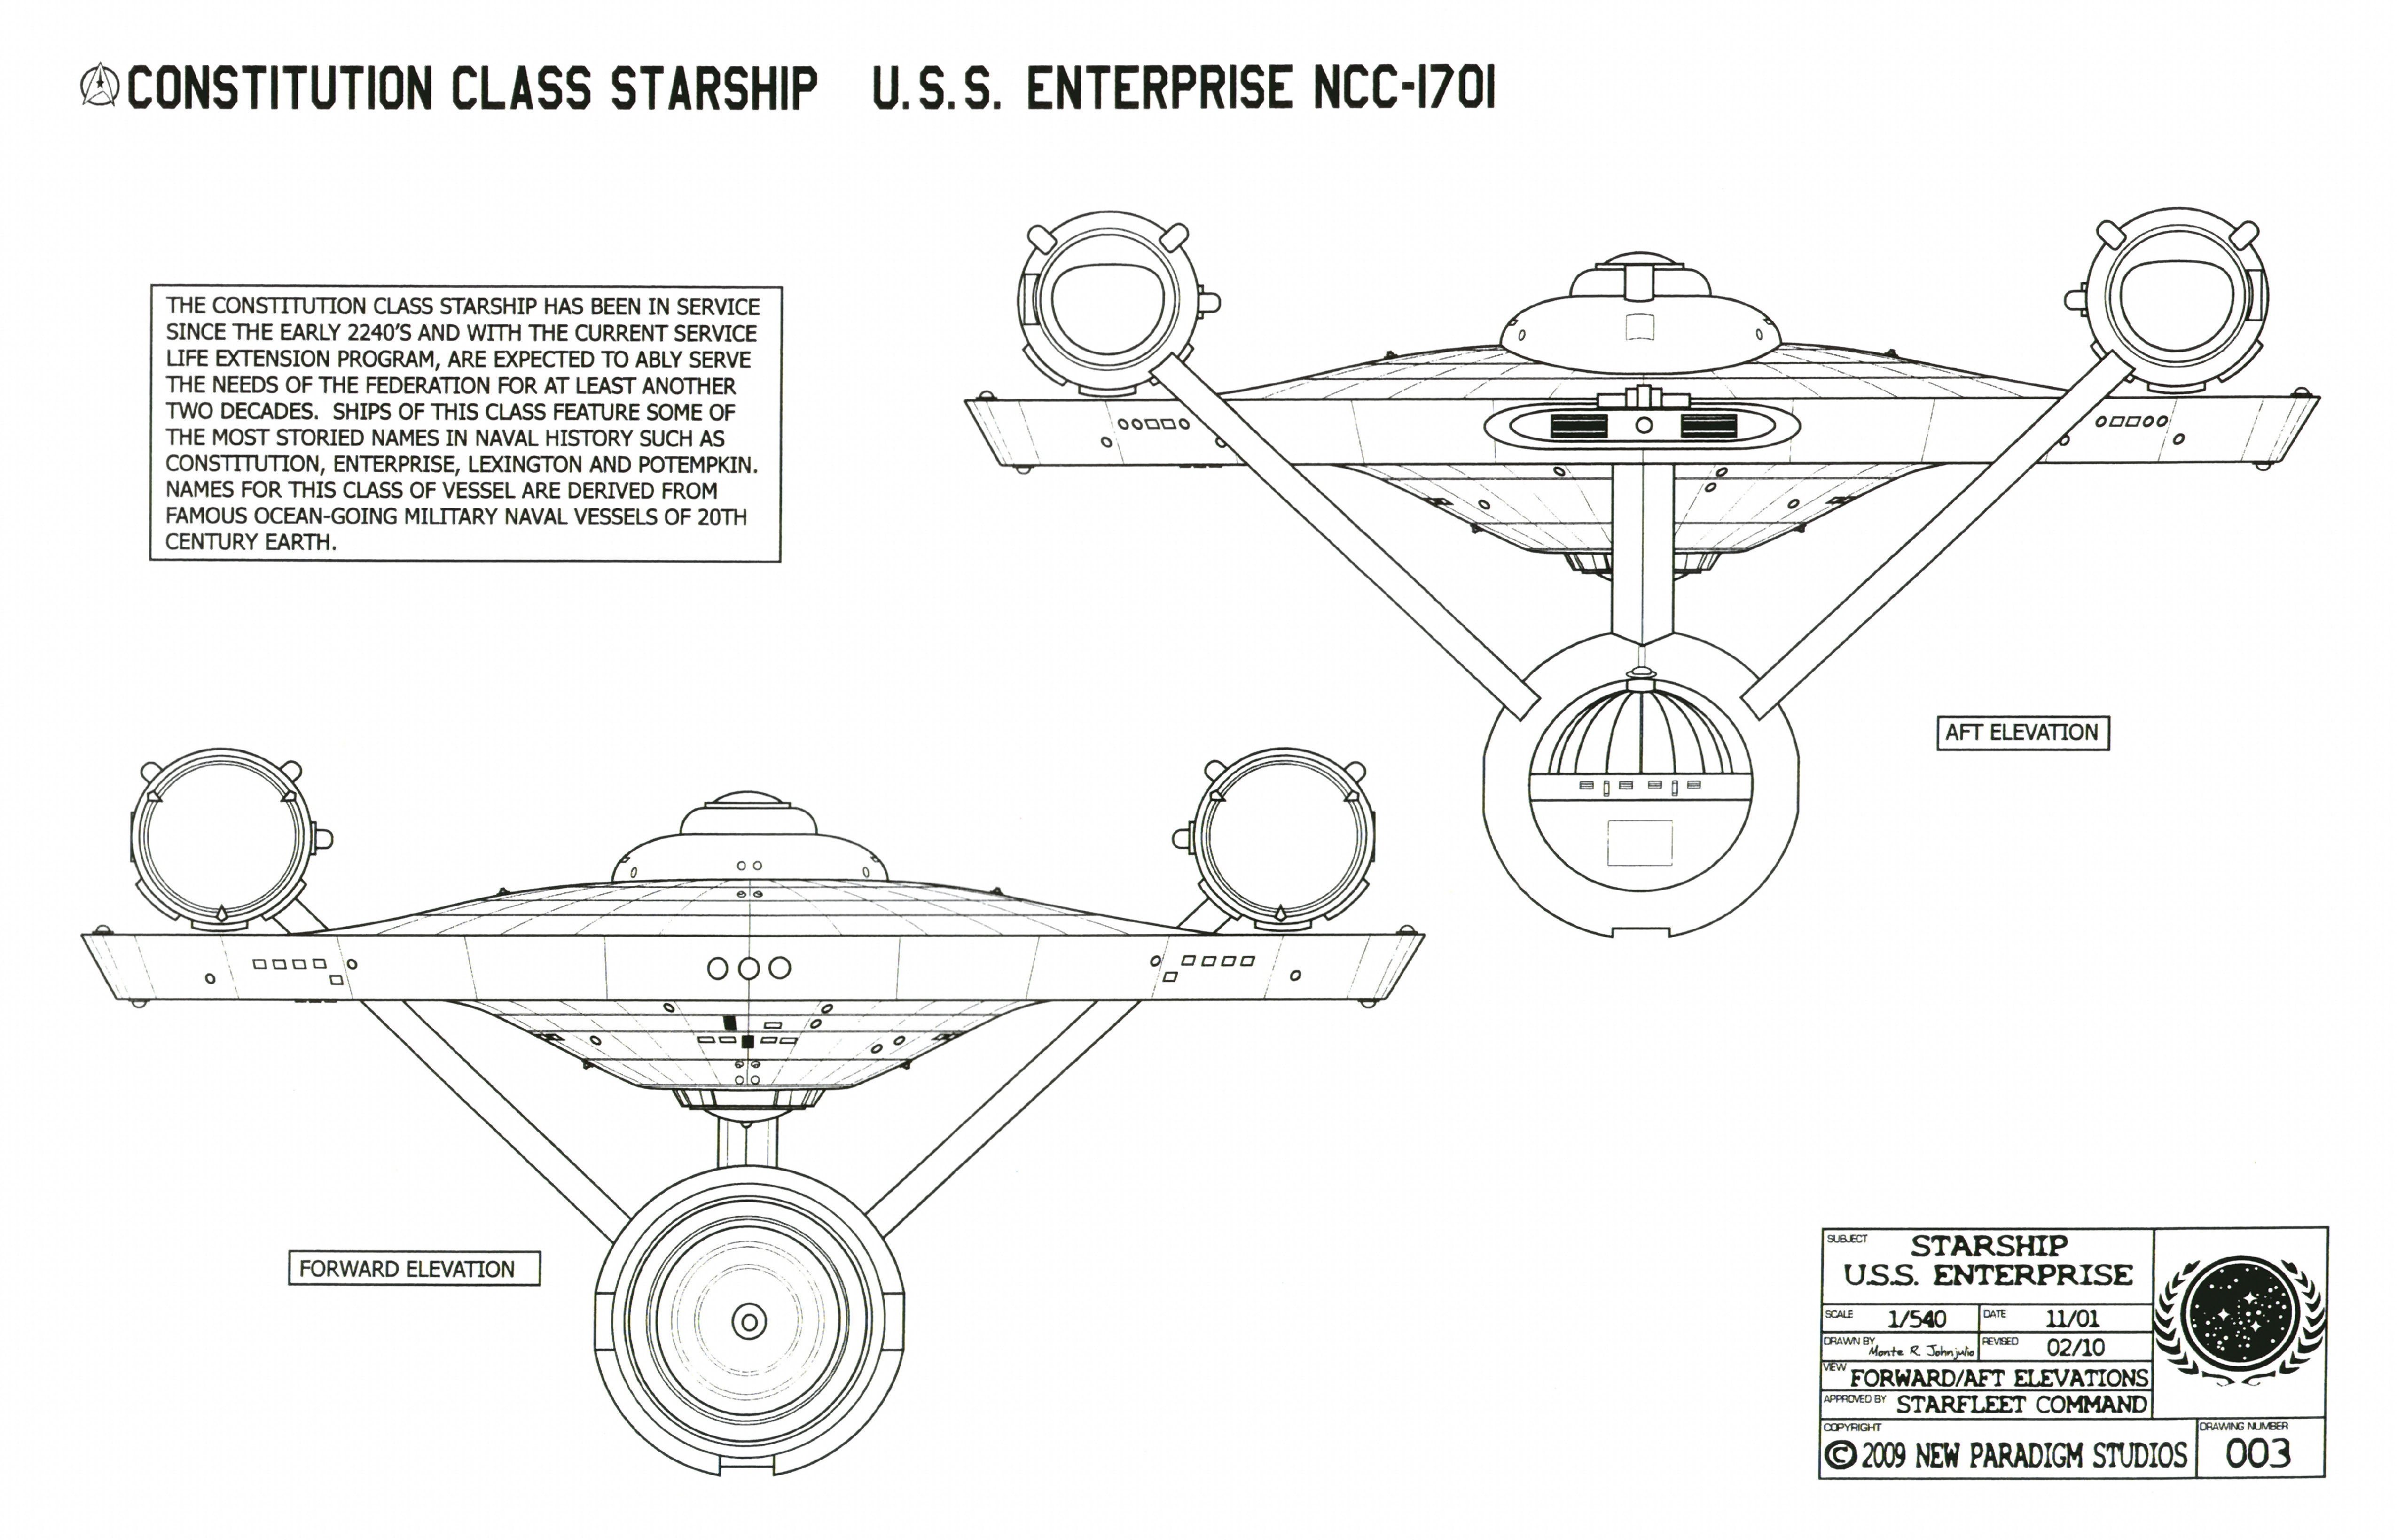 Charming Constitution Class Starship   U.S.S. Enterprise NCC 1701